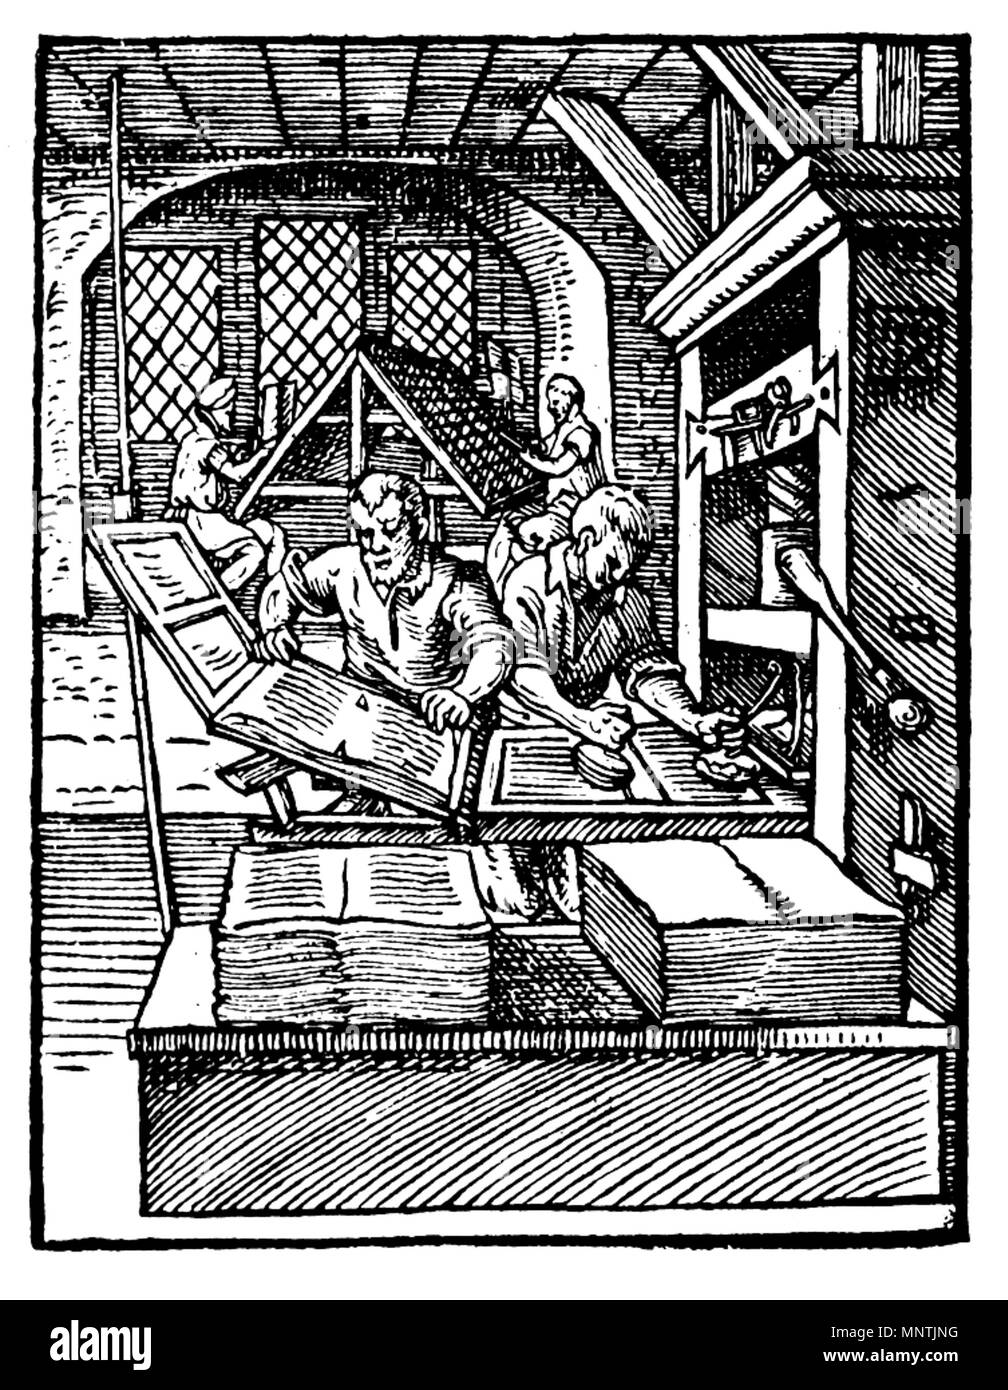 . At the left in the foreground, a 'puller' removes a printed sheet from the press. The 'beater' to his right is inking the forme. In the background, compositors are setting type. 1568.   Jost Amman (1539–1591)   Alternative names Jodocus Amman  Description Swiss engraver and printmaker  Date of birth/death 23 June 1539 17 March 1591  Location of birth/death Zürich Nuremberg  Work location Nuremberg  Authority control  : Q116240 VIAF:32038452 ISNI:0000 0001 0884 8733 ULAN:500115433 LCCN:n50021592 NLA:35006056 WorldCat 1029 Printer in 1568-ce - Stock Image